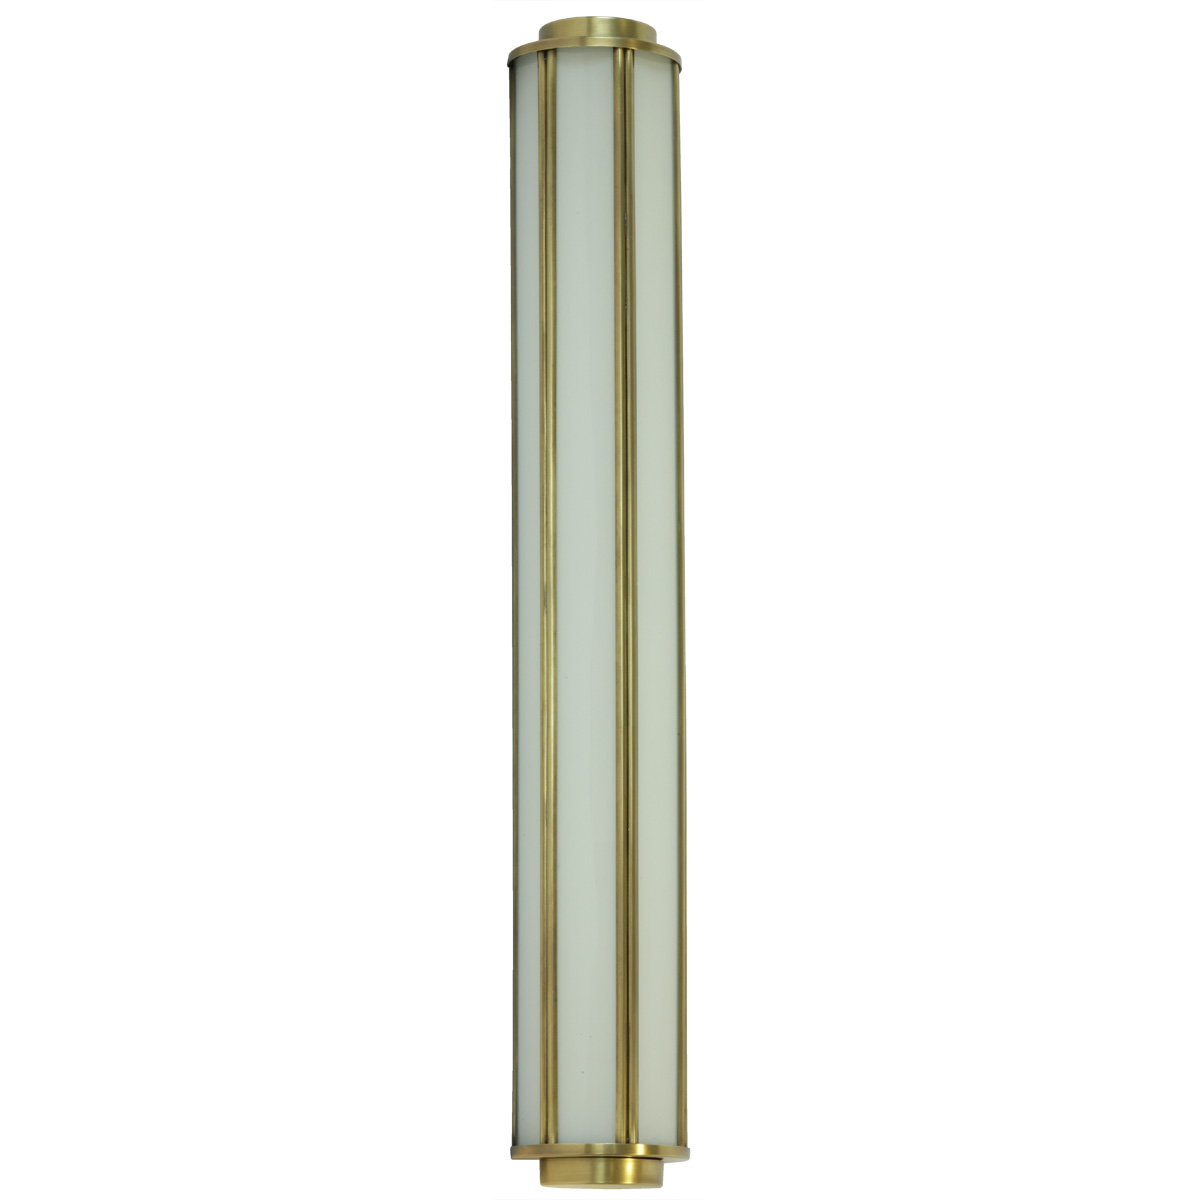 French art deco brass sconce balinea 60 terra lumi for Art deco exterior light fixtures